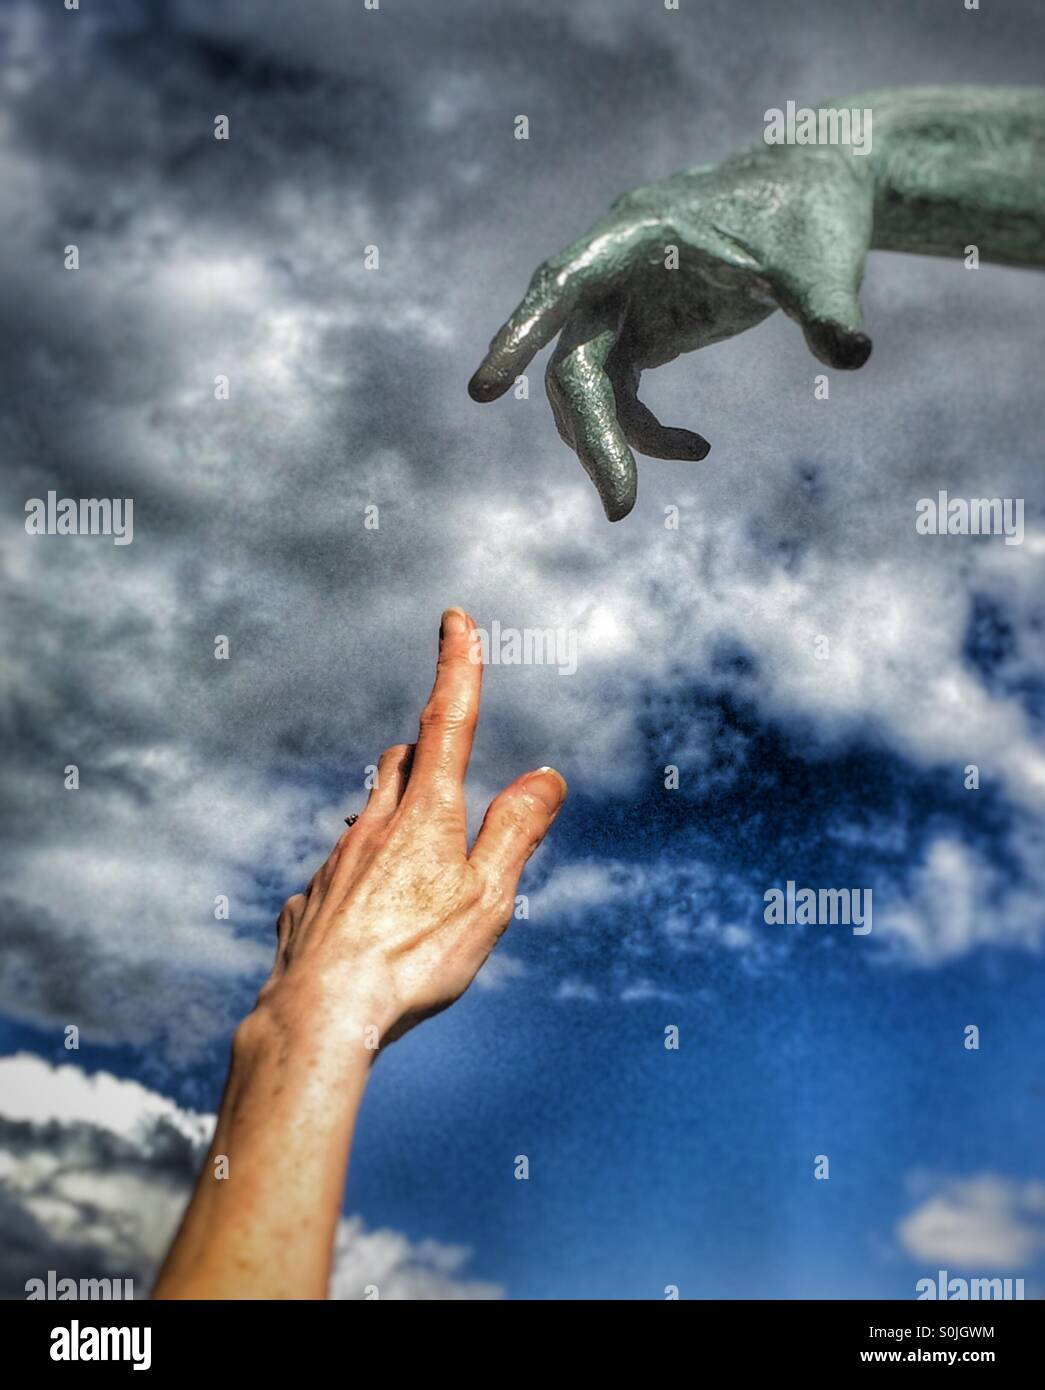 Reaching out touching hands - Stock Image